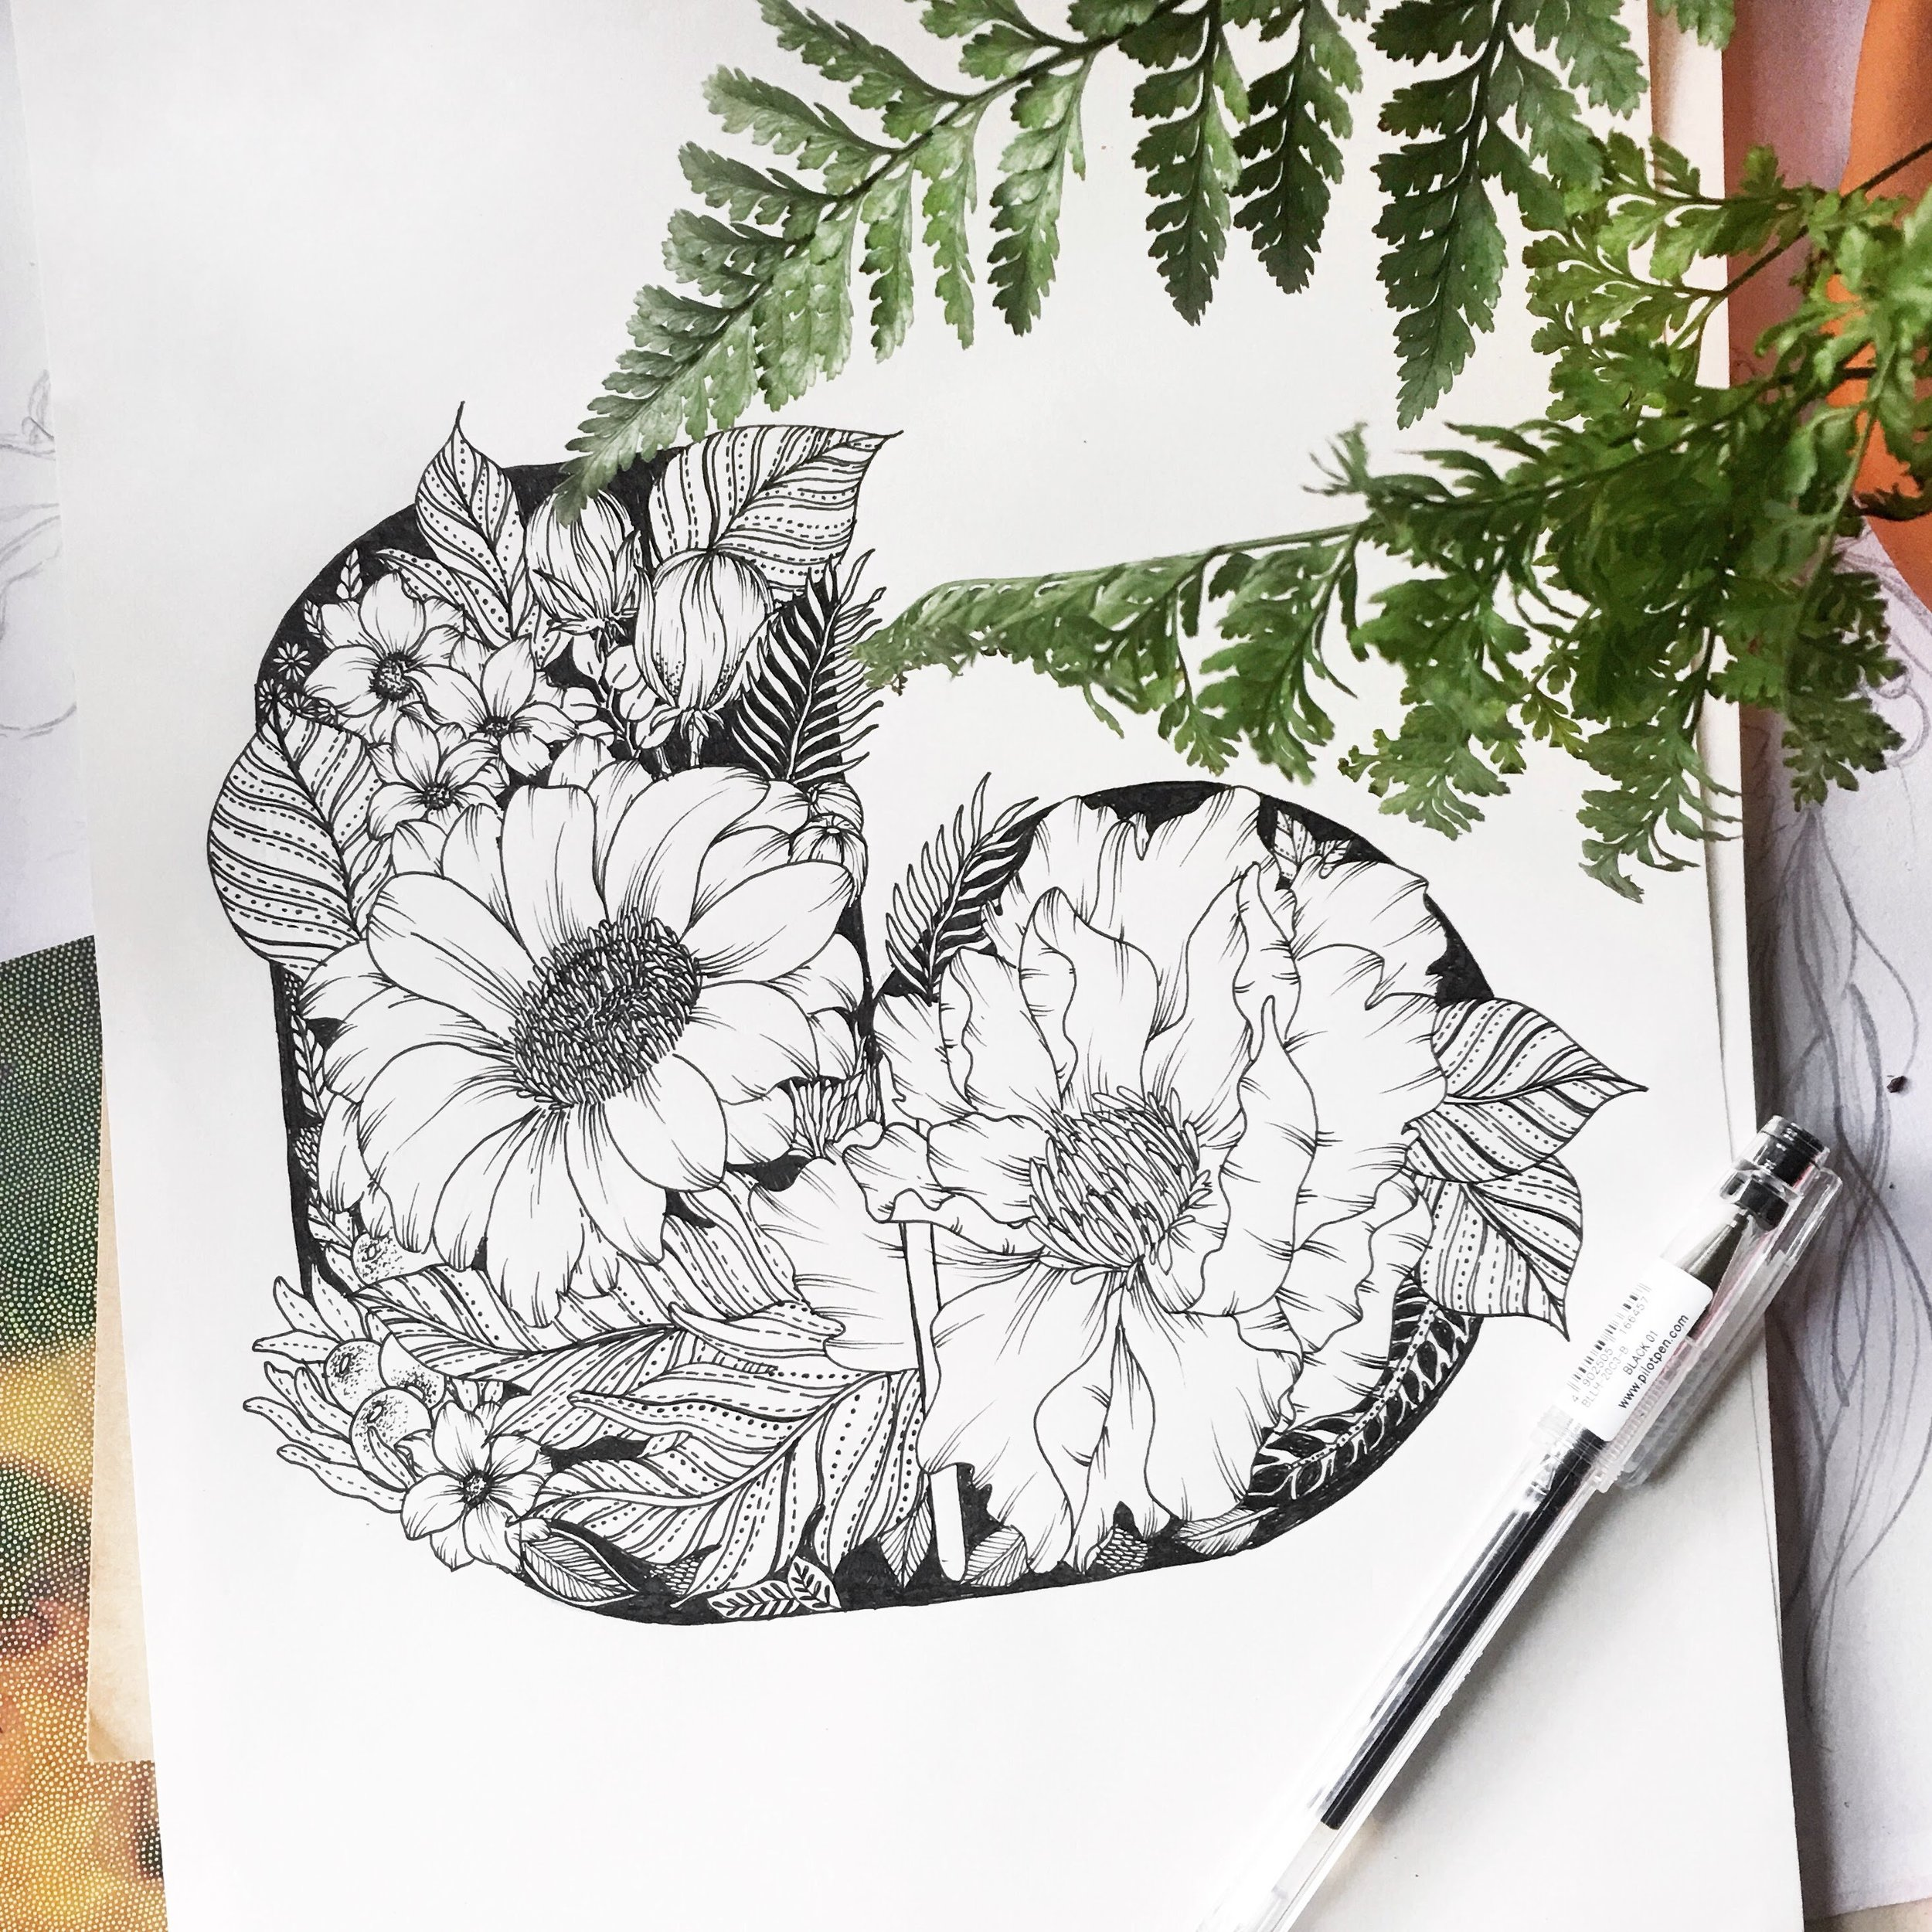 Combining typography and illustration. Done as part of the #BotanicalAtoZ series.